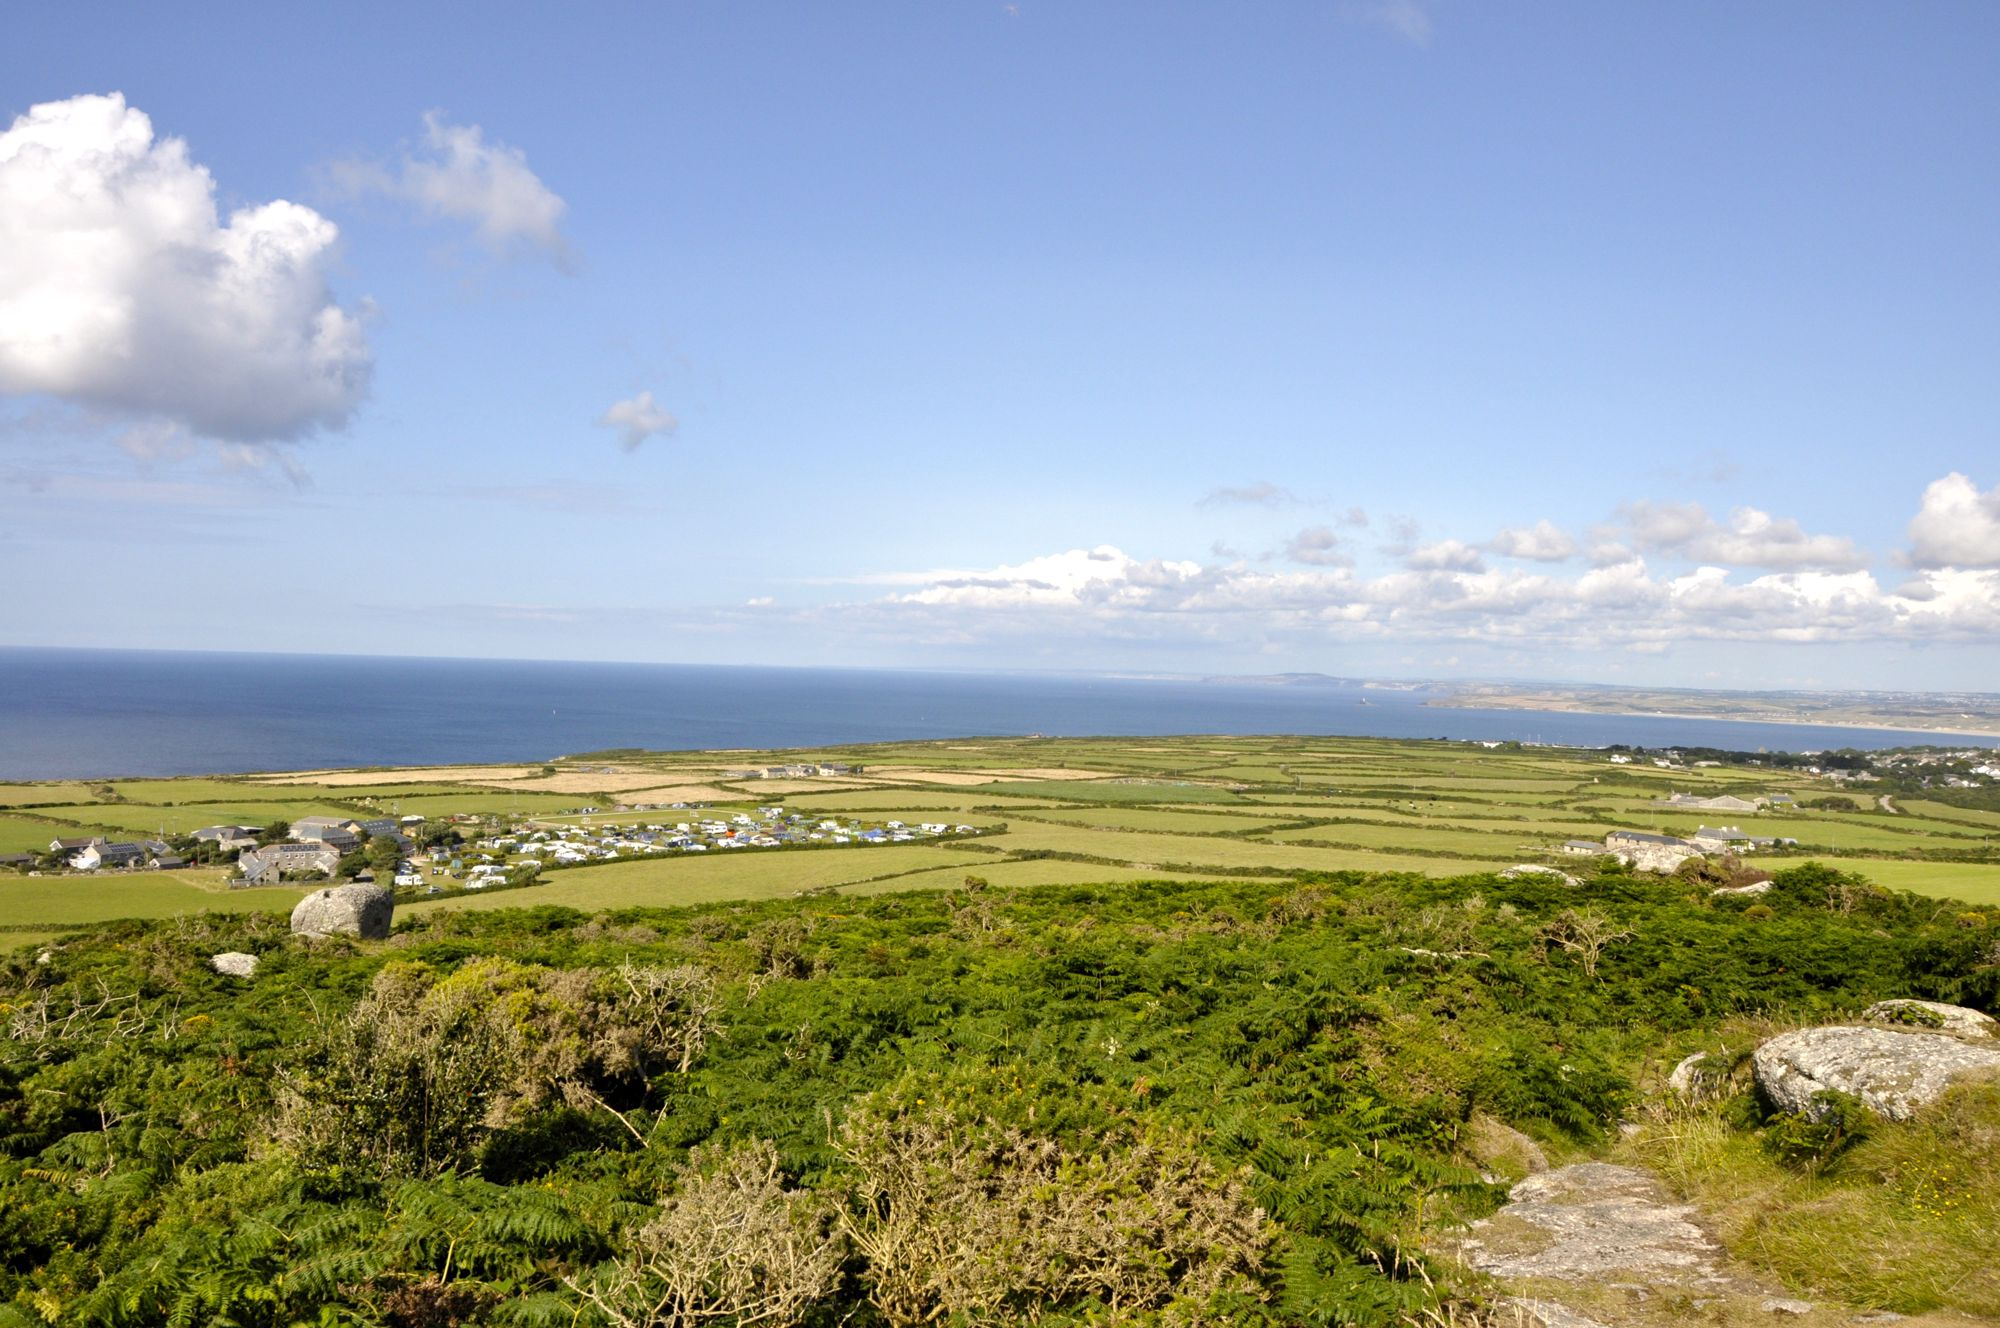 Spectacular views and a wonderfully peaceful atmosphere, located just two miles from the sandy beaches of St Ives.